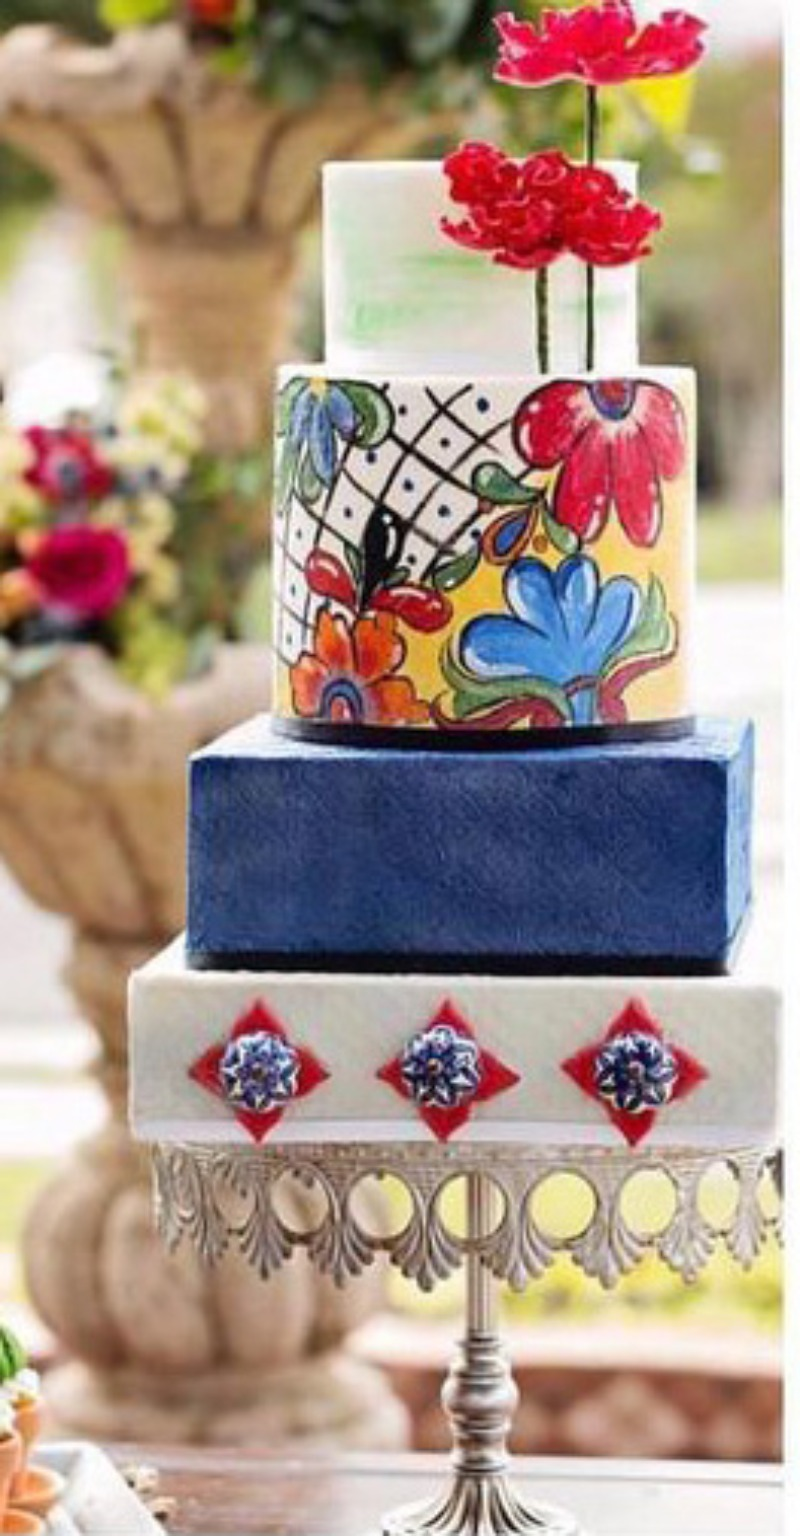 Bright, Bold & Beautifully Unique Wedding Cake on Opulent Treasures Antique Silver Crown Cake Stand